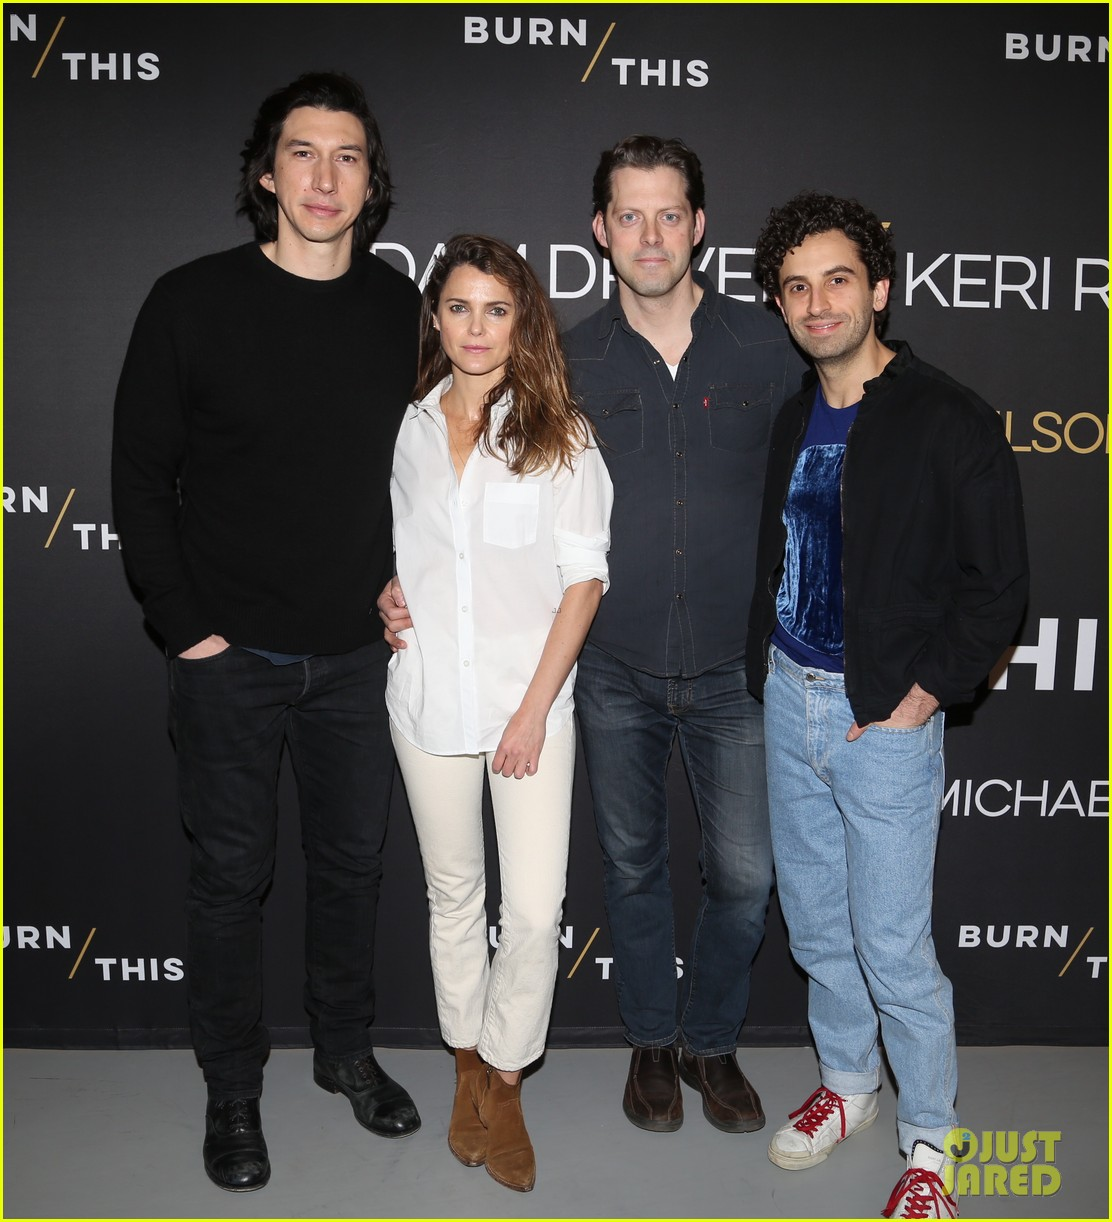 adam driver keri russell join burn this broadway cast at nyc photo call 024253177